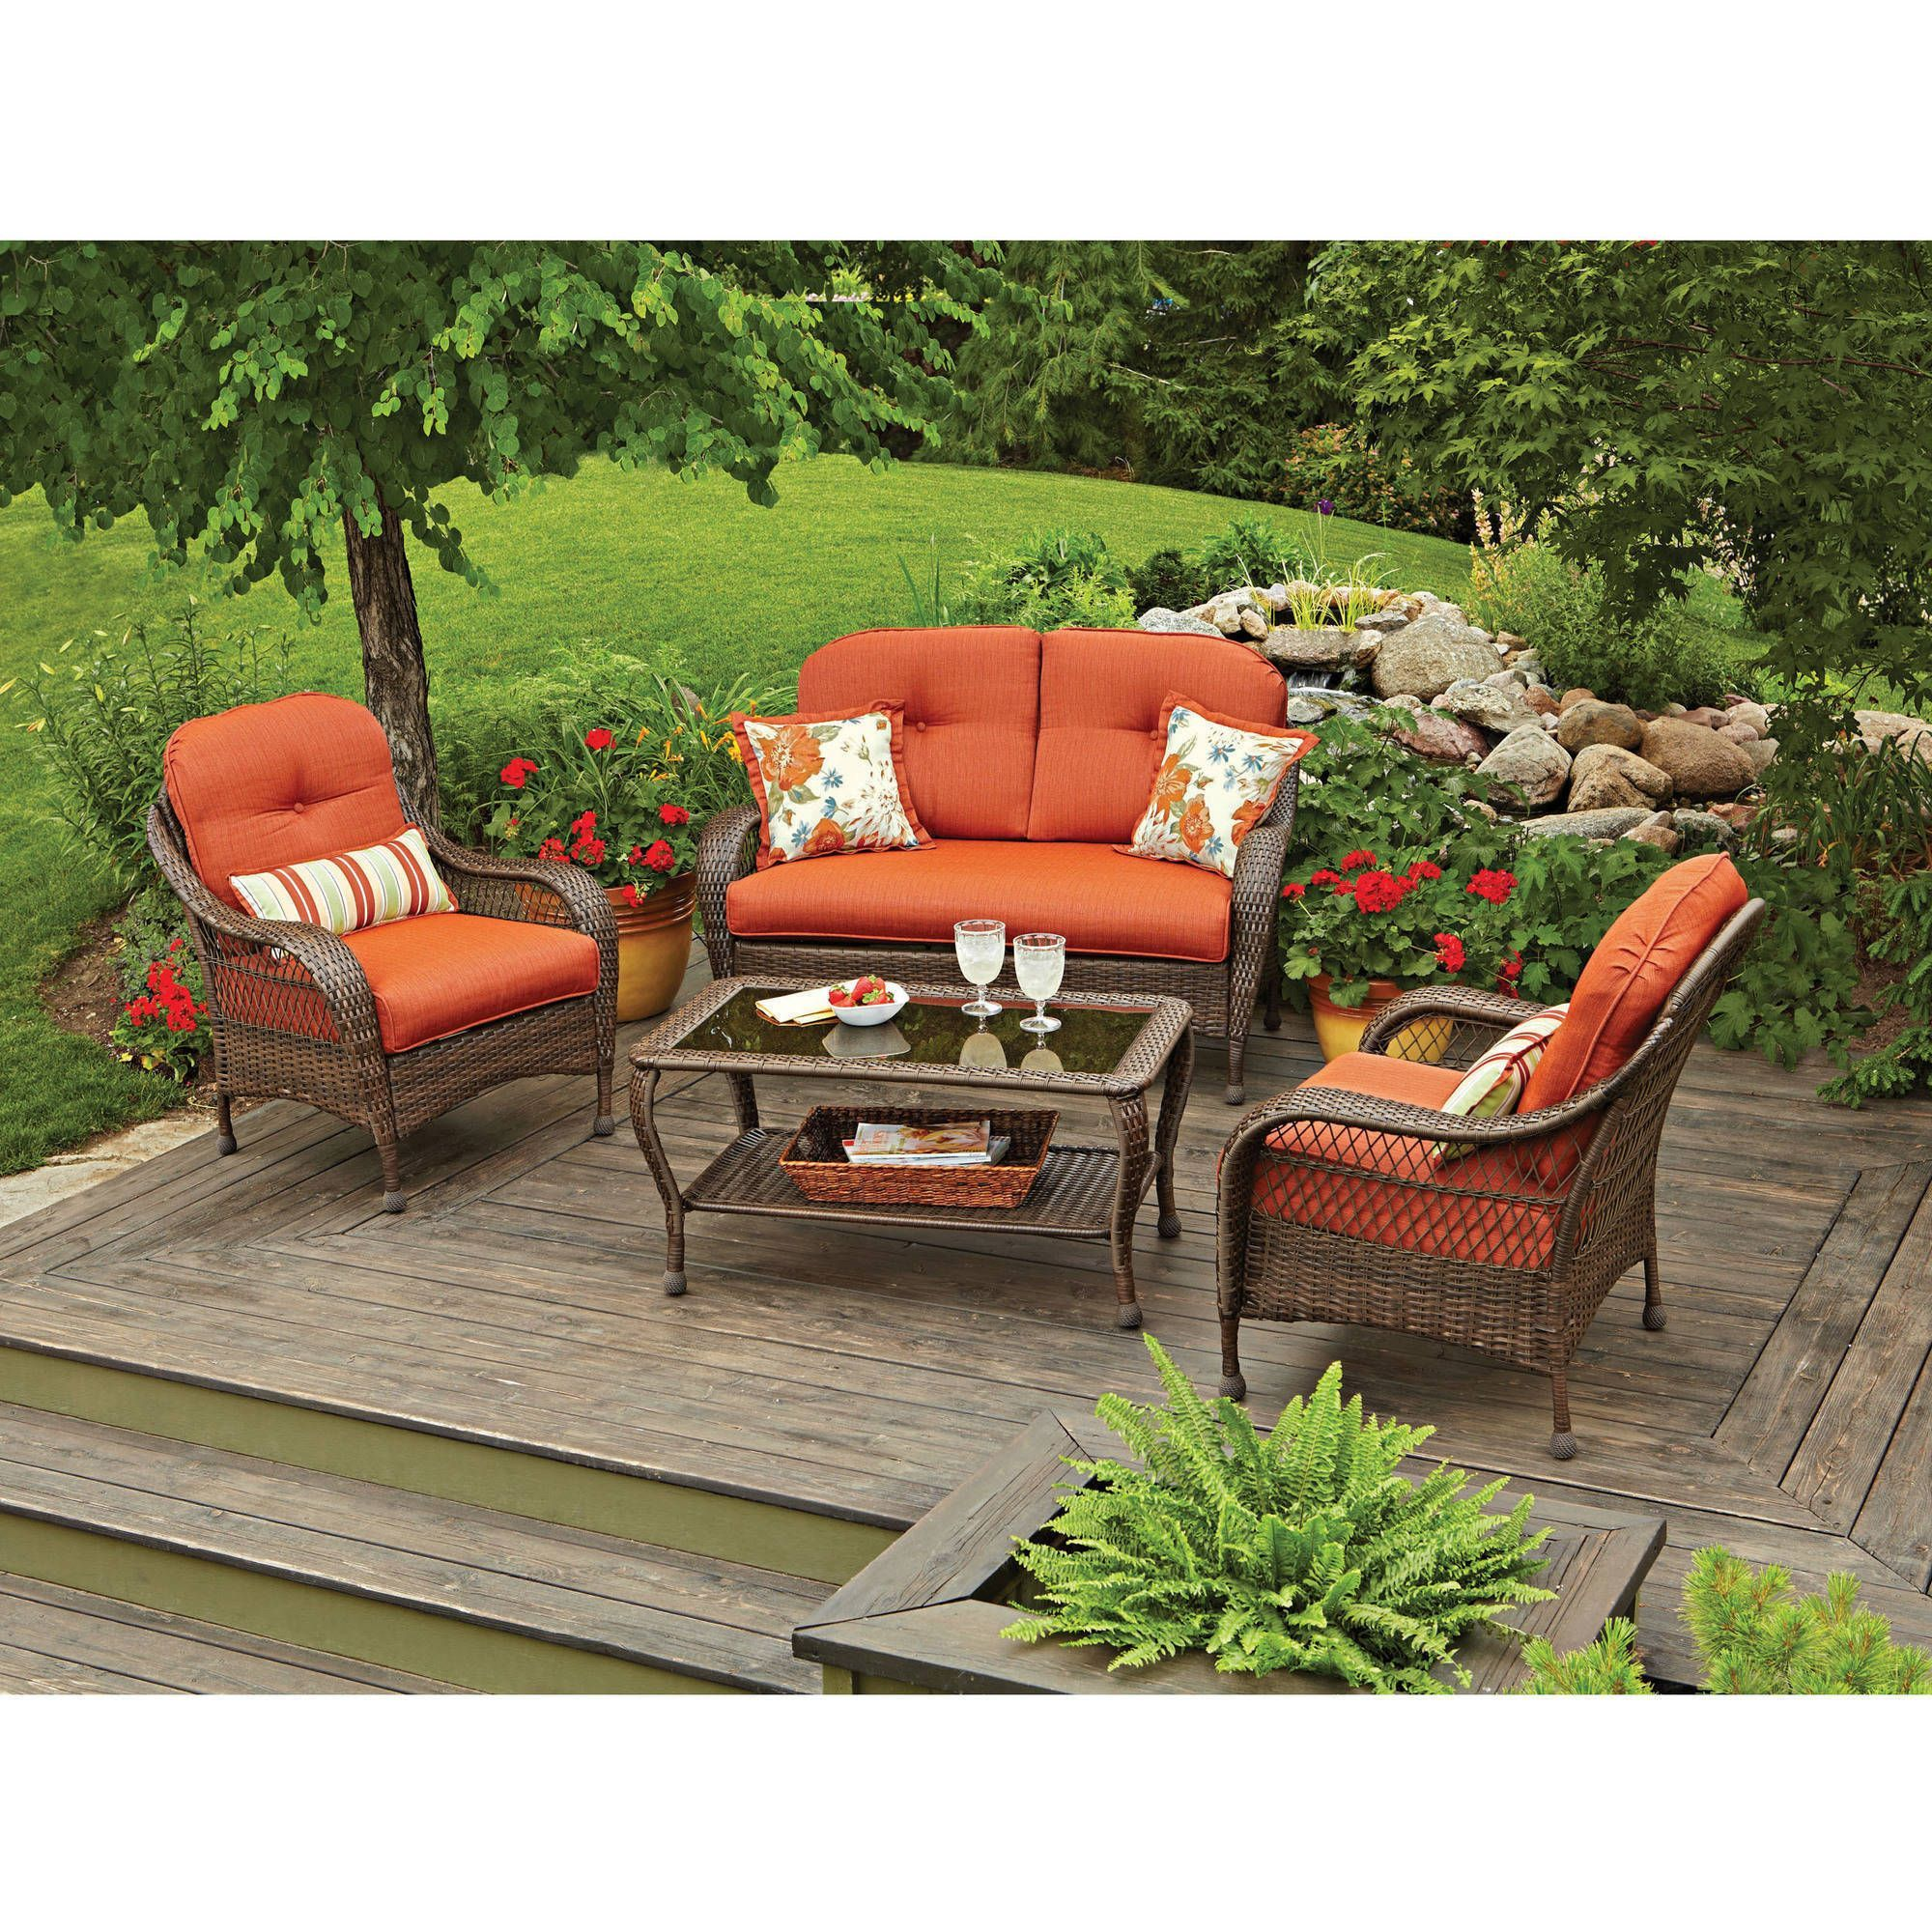 Better Homes And Gardens Deep Seat Outdoor Cushions